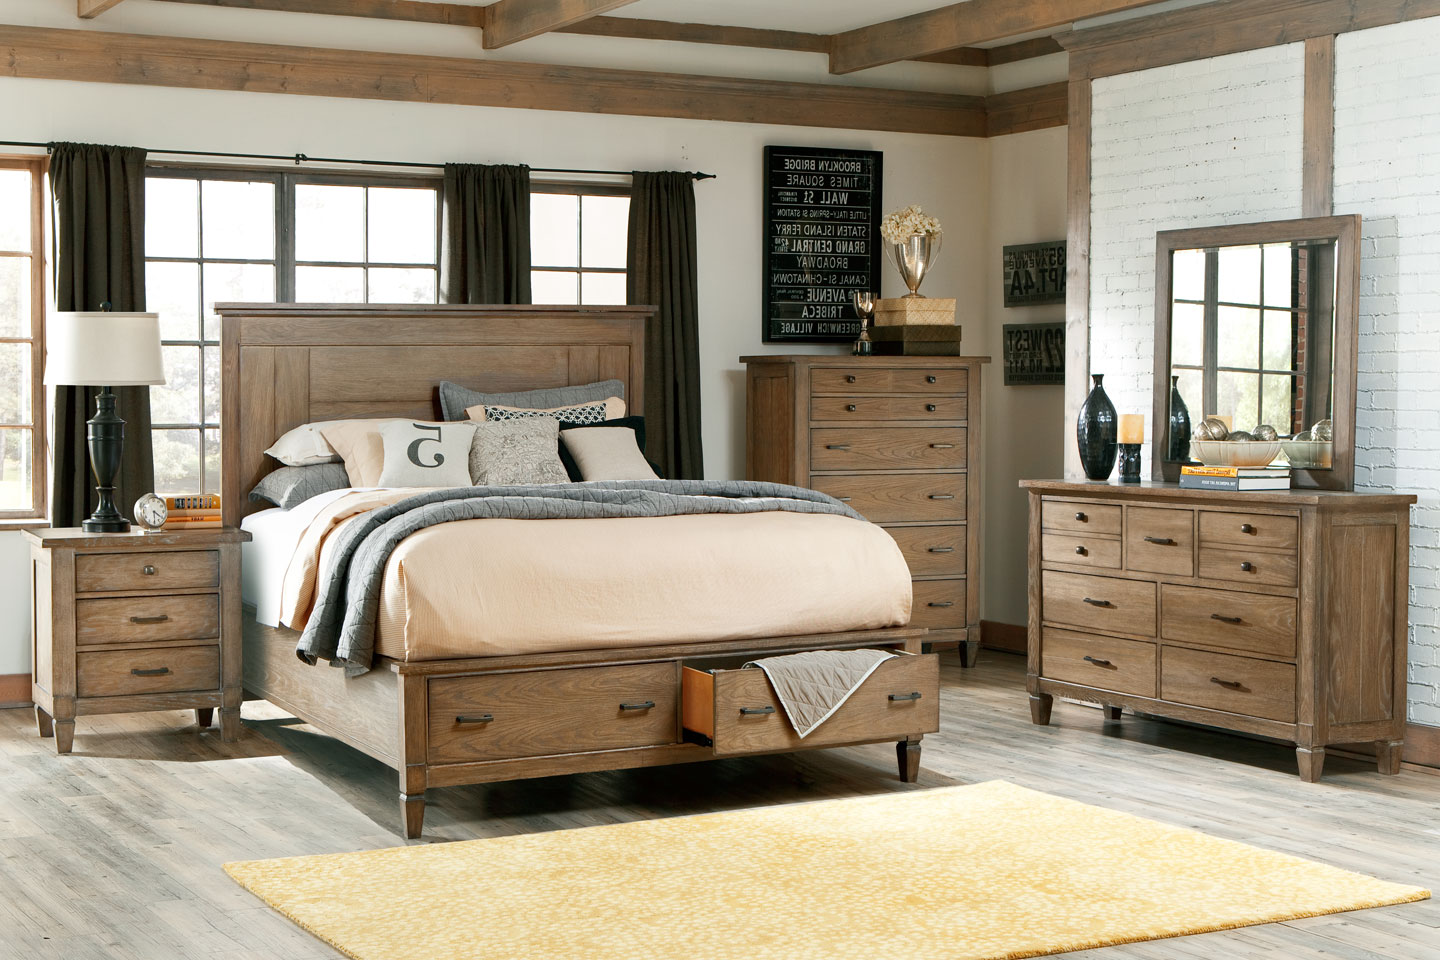 Gavin wood bedroom furniture collection wood bedroom for Bedroom furniture furniture